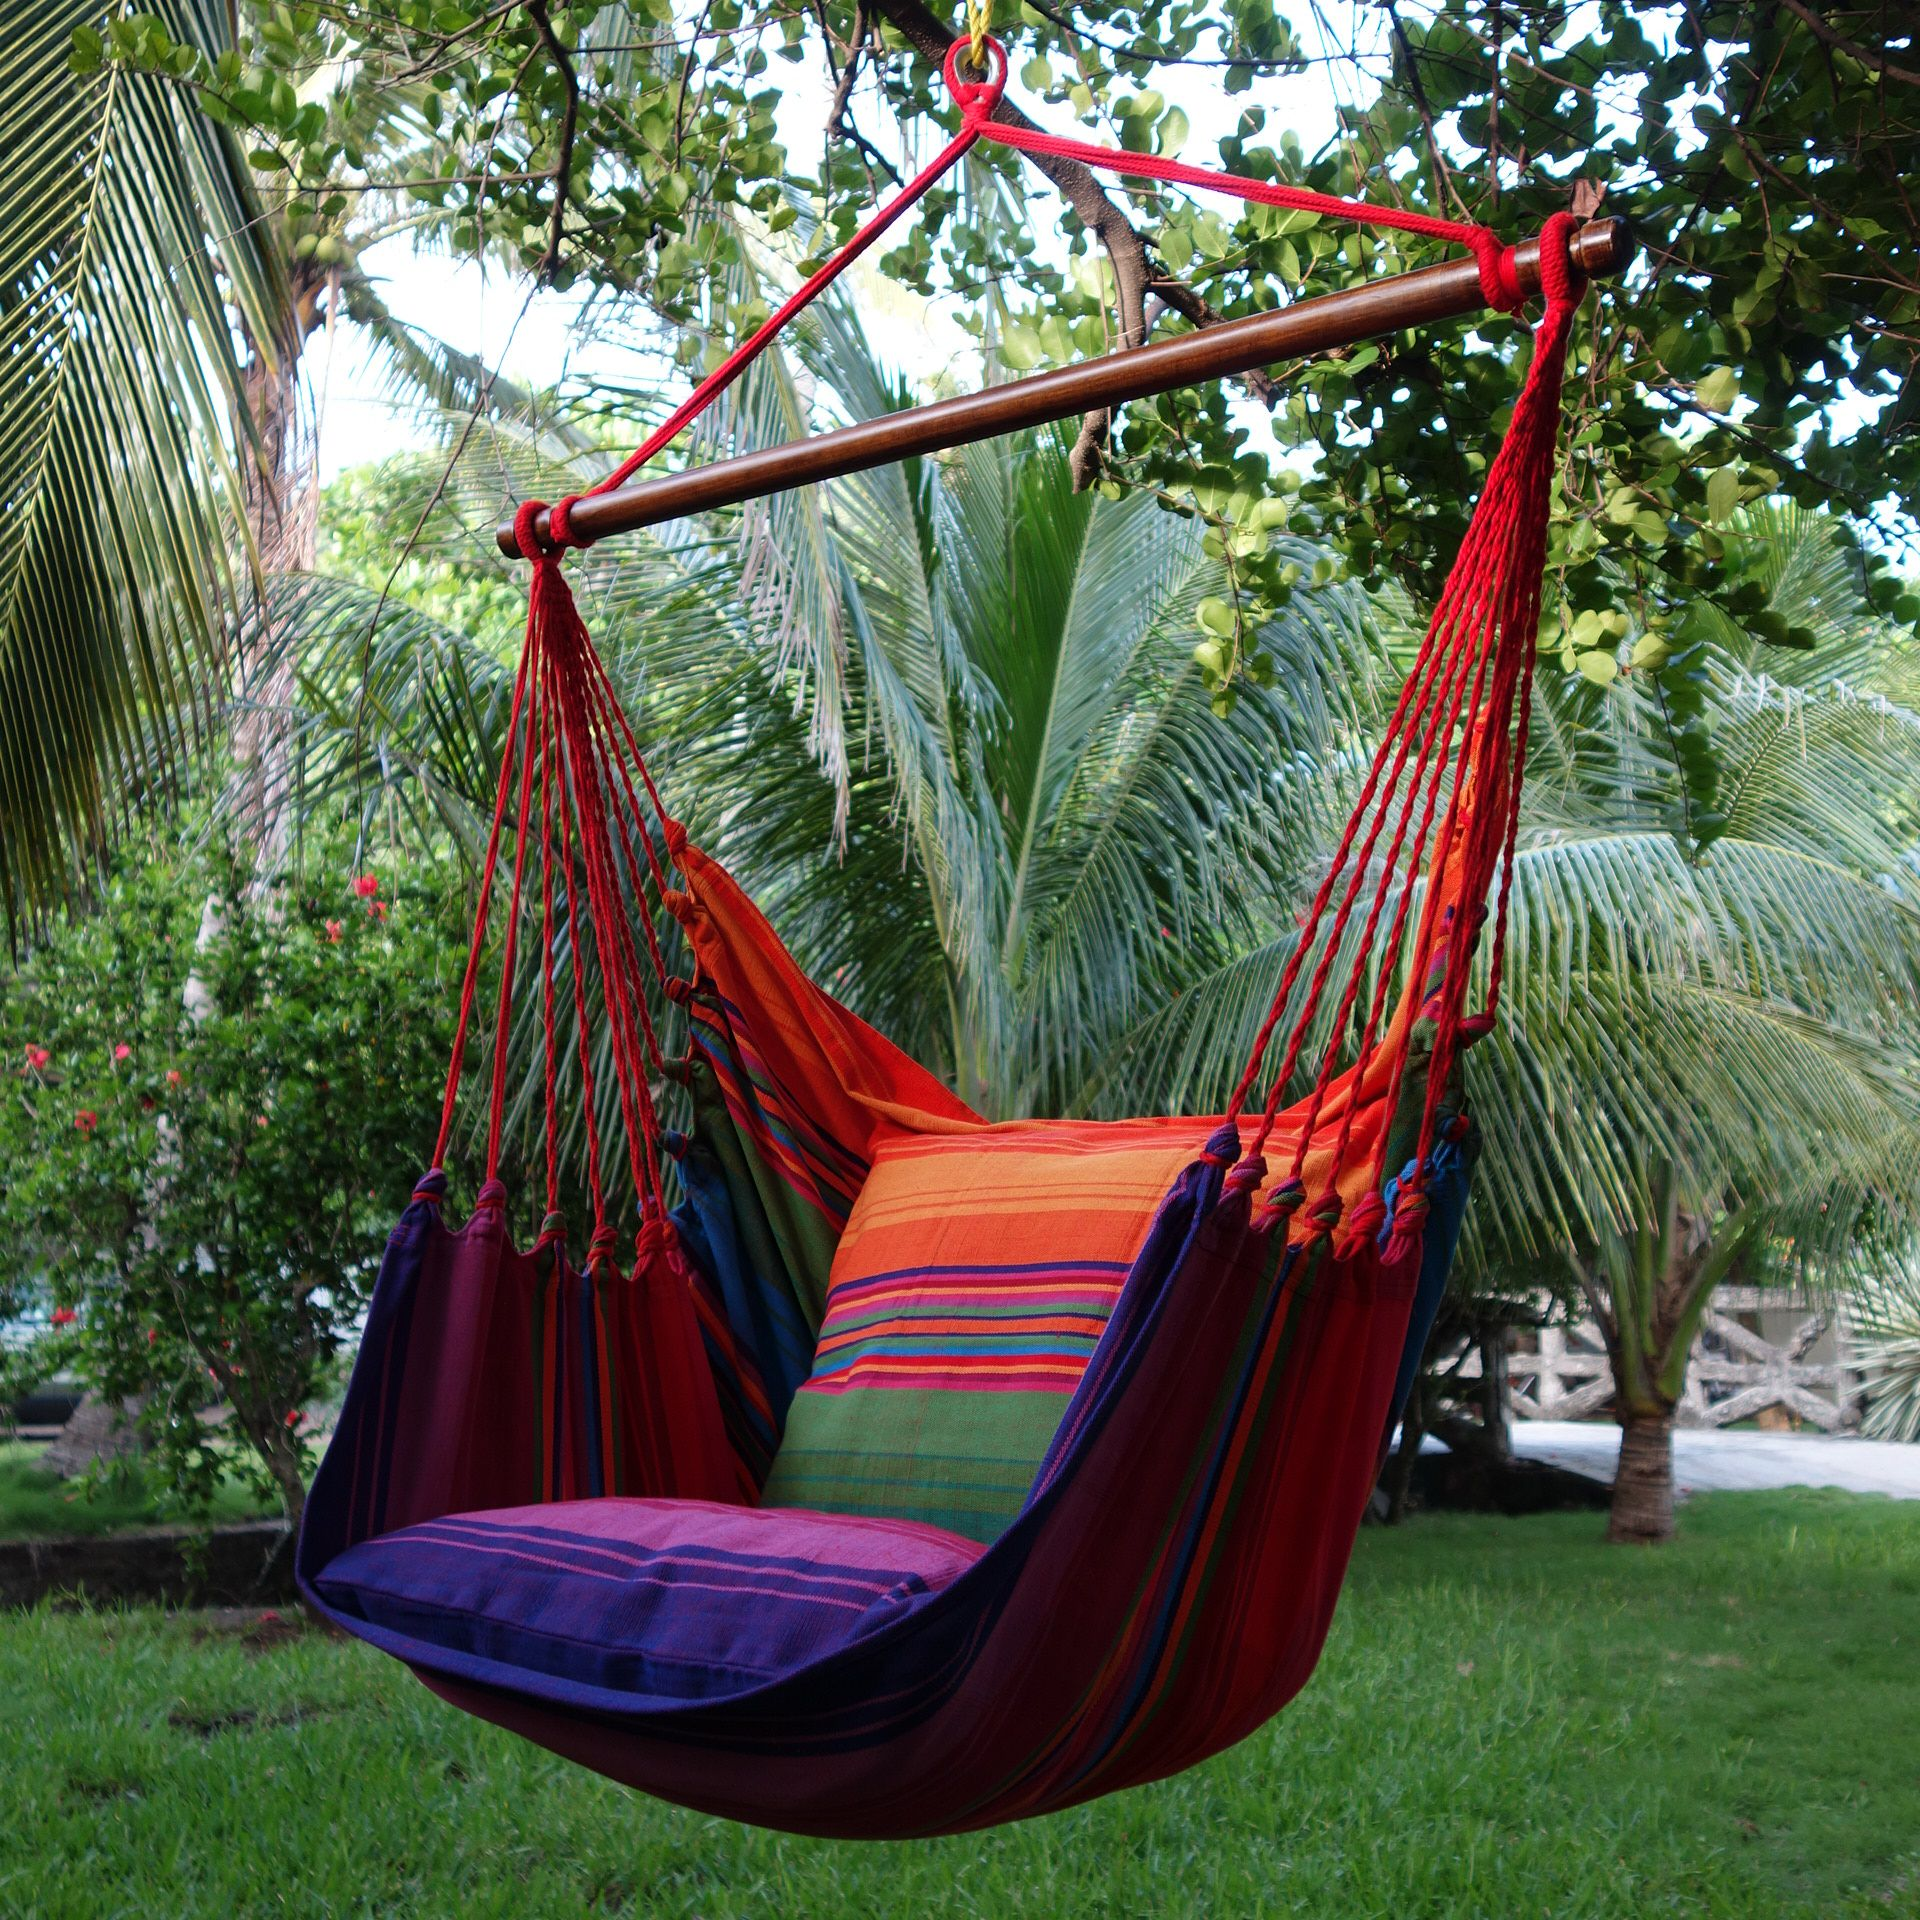 choosing a hammock chair for your backyard - http://www